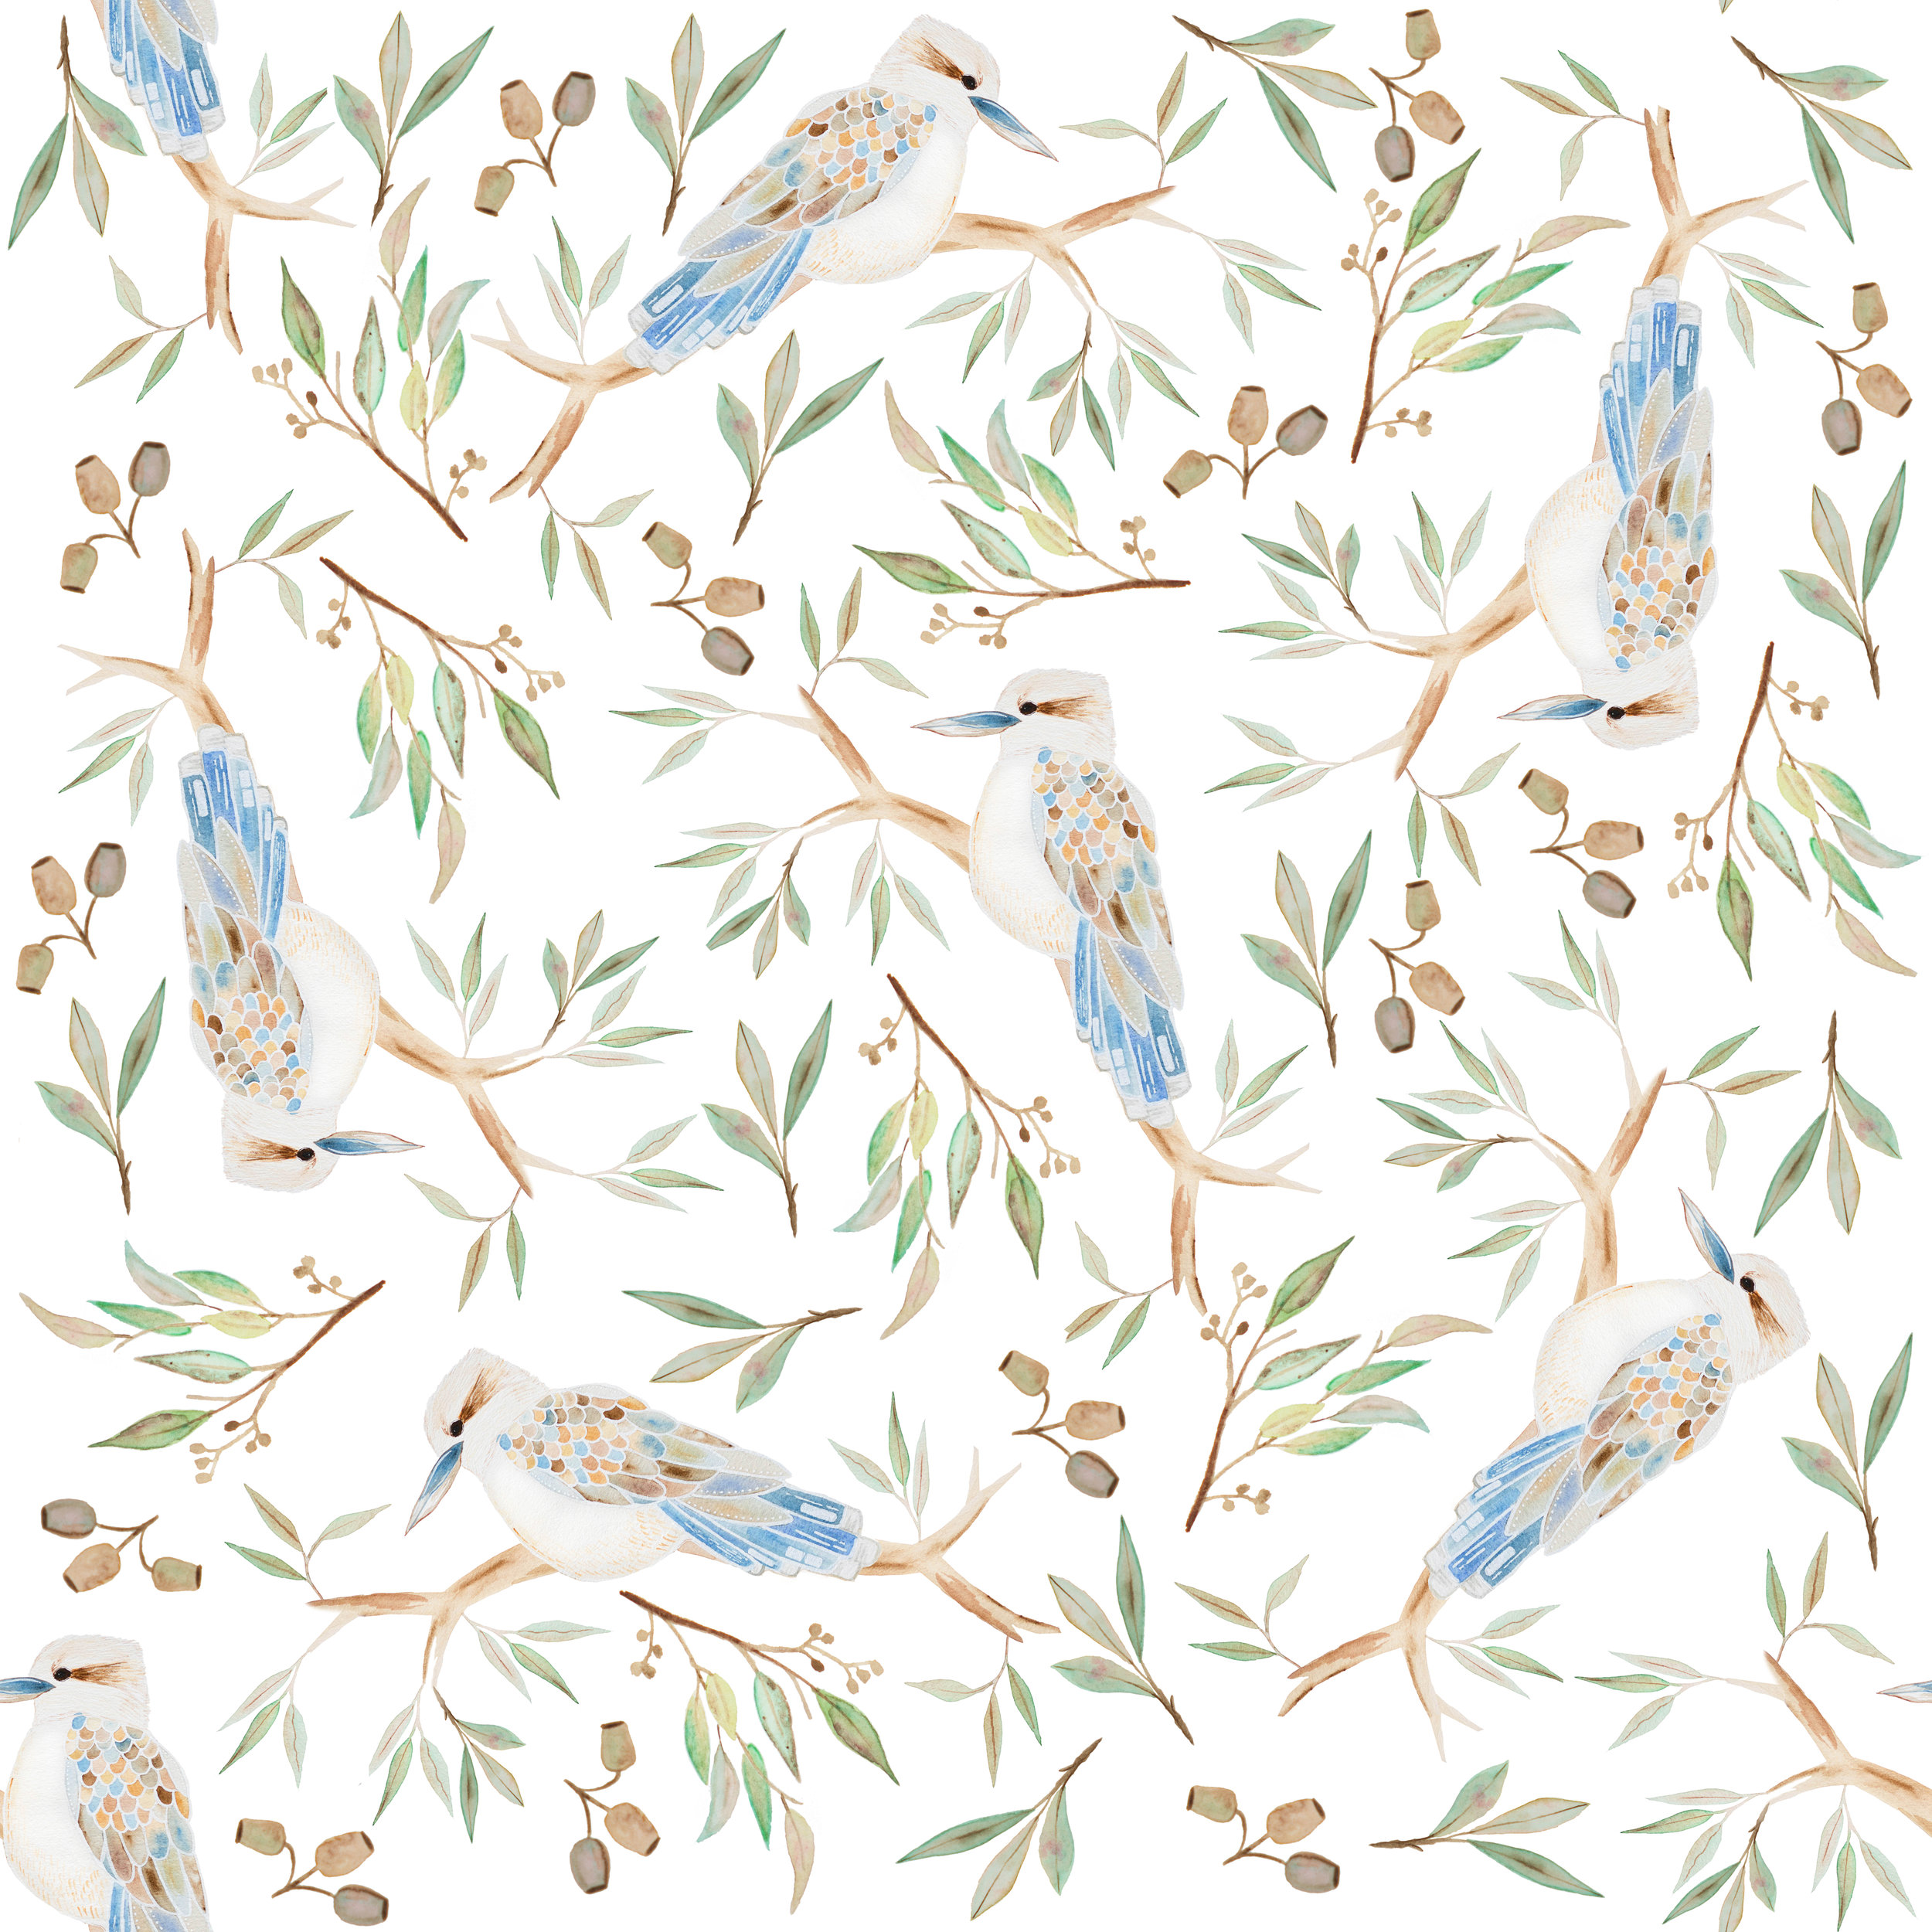 kookaburra-pattern-textile-surface-design